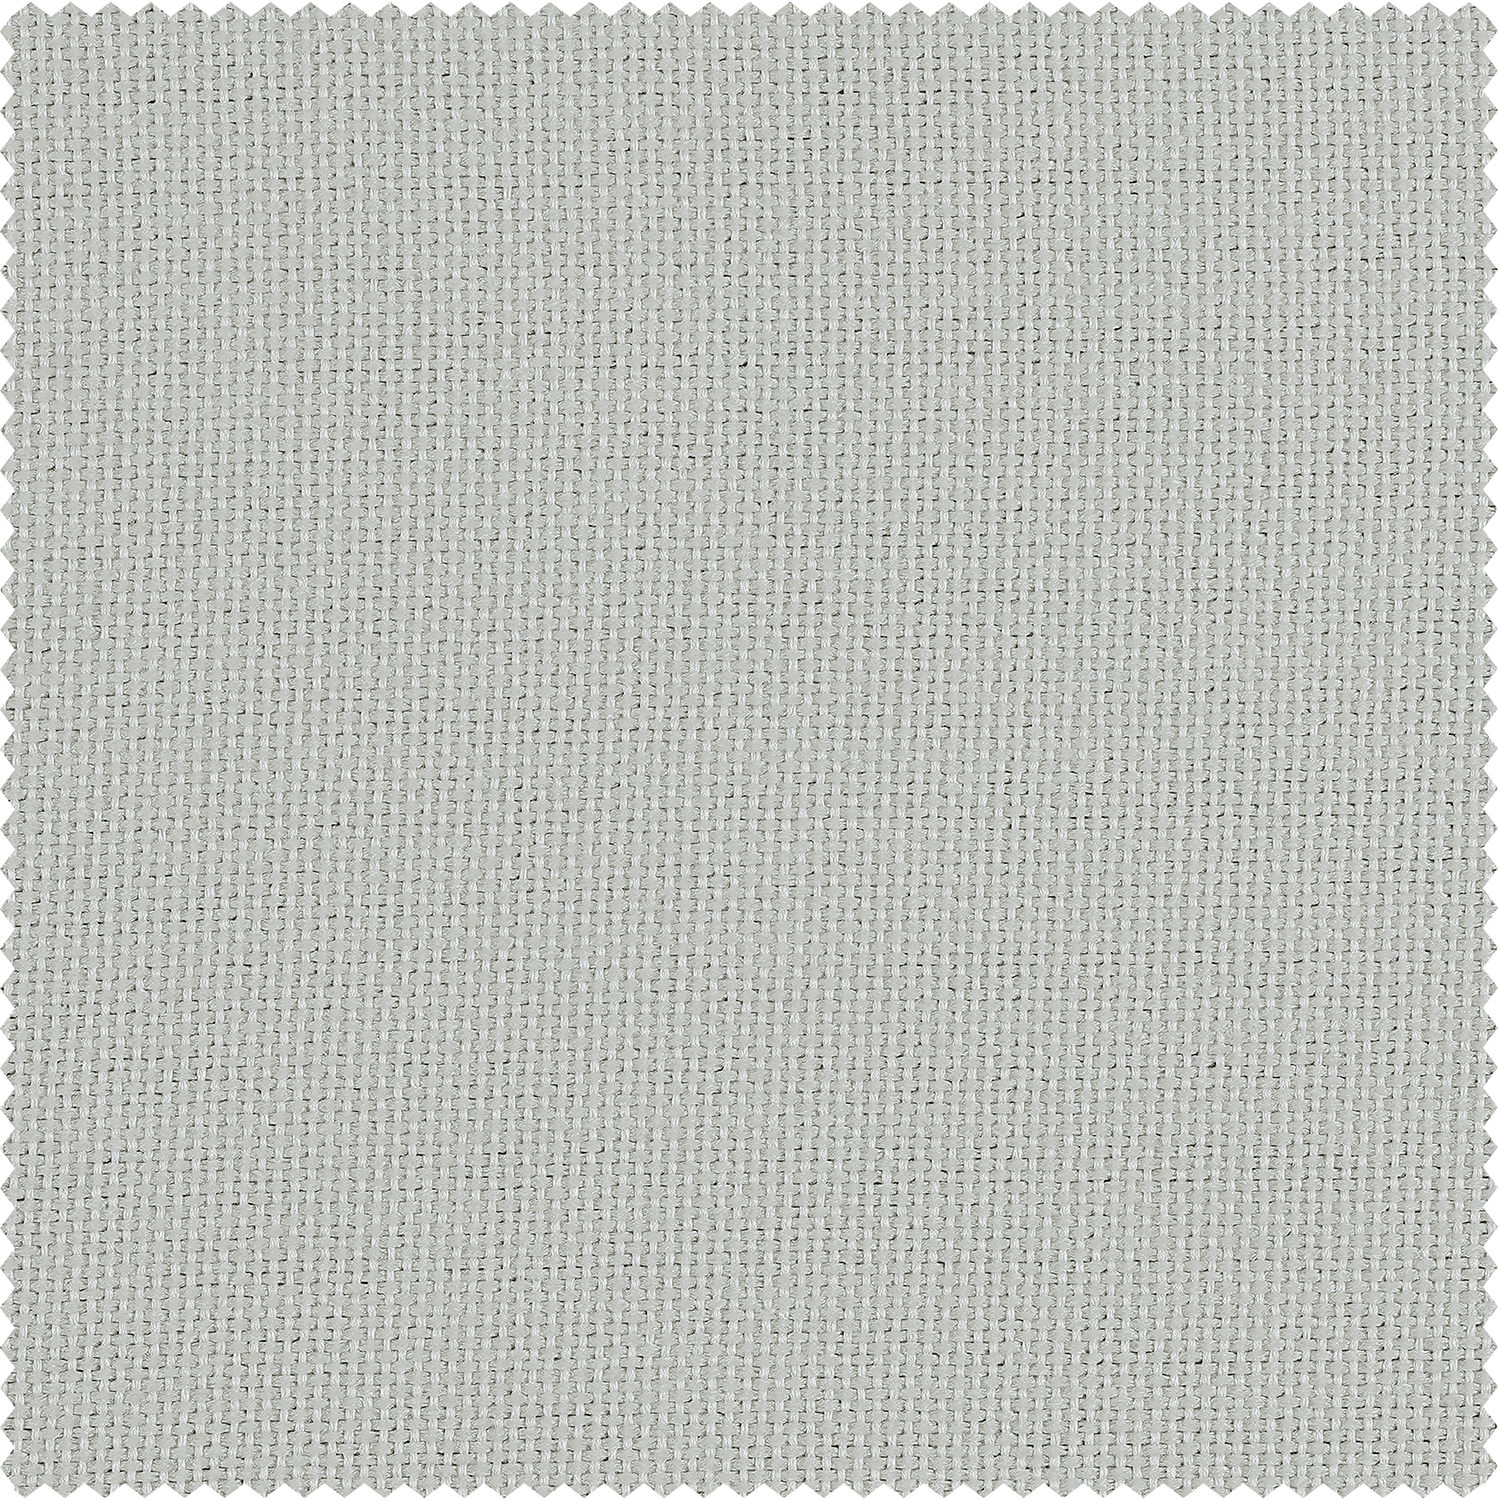 Oyster Faux Linen Blackout Swatch